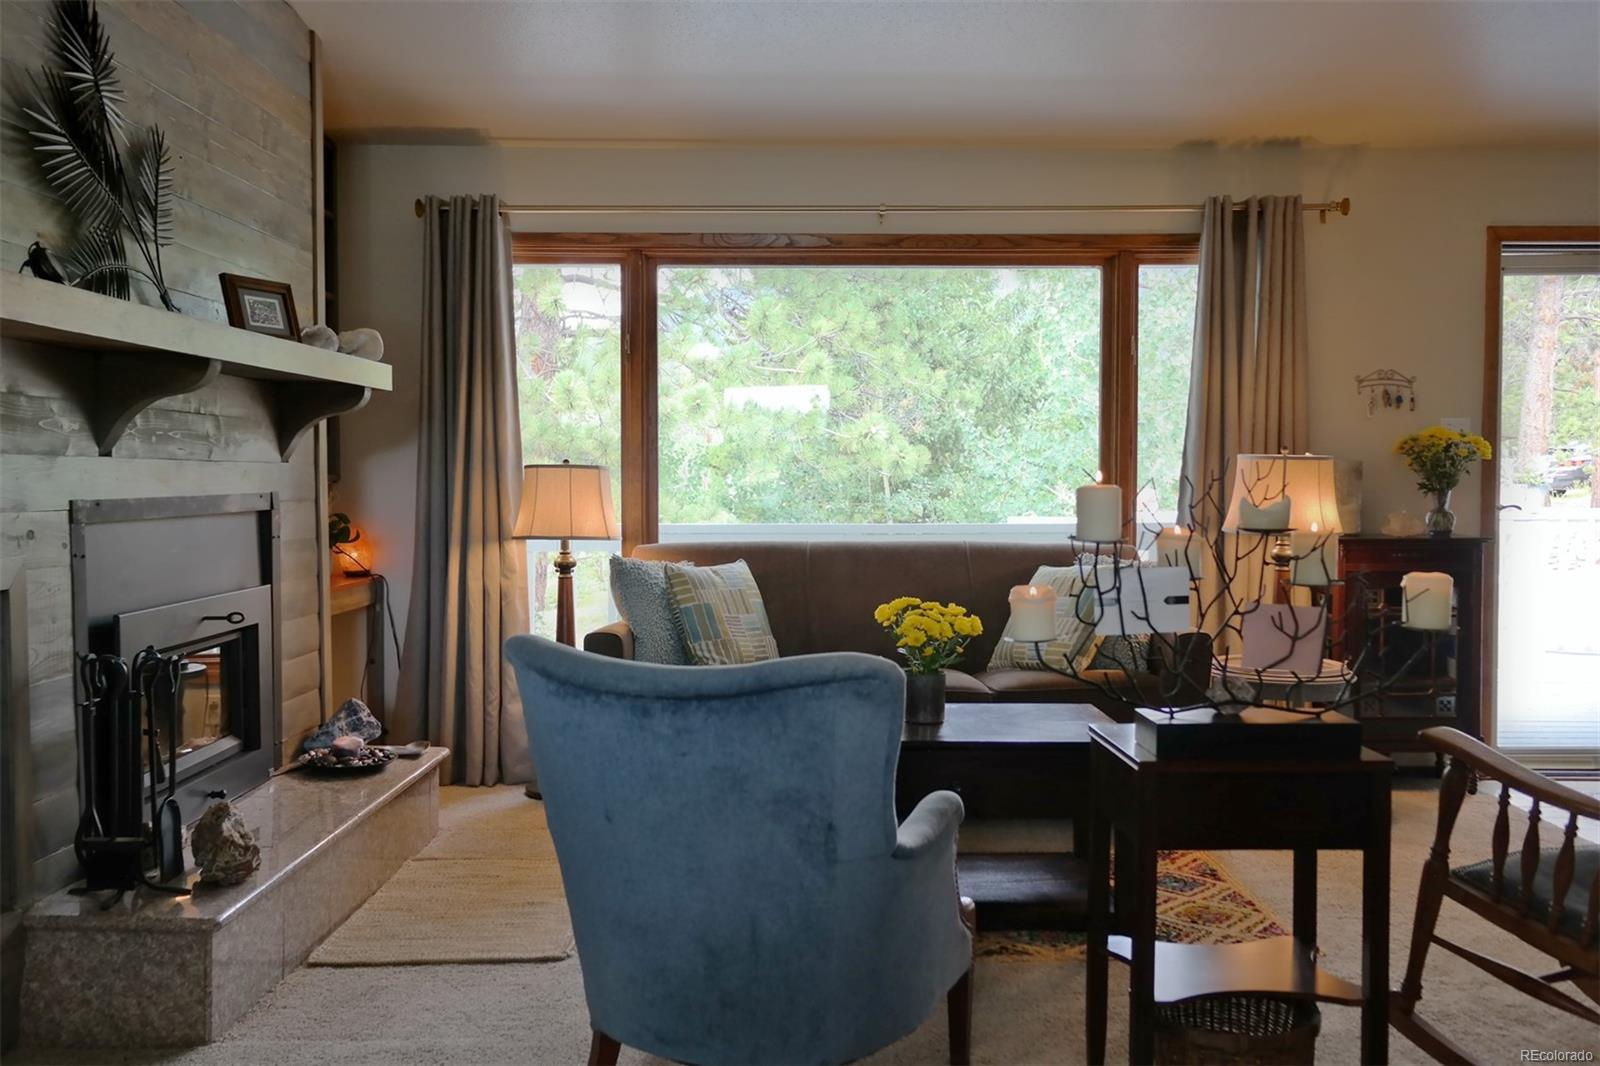 Large Window for Natural Light & Views